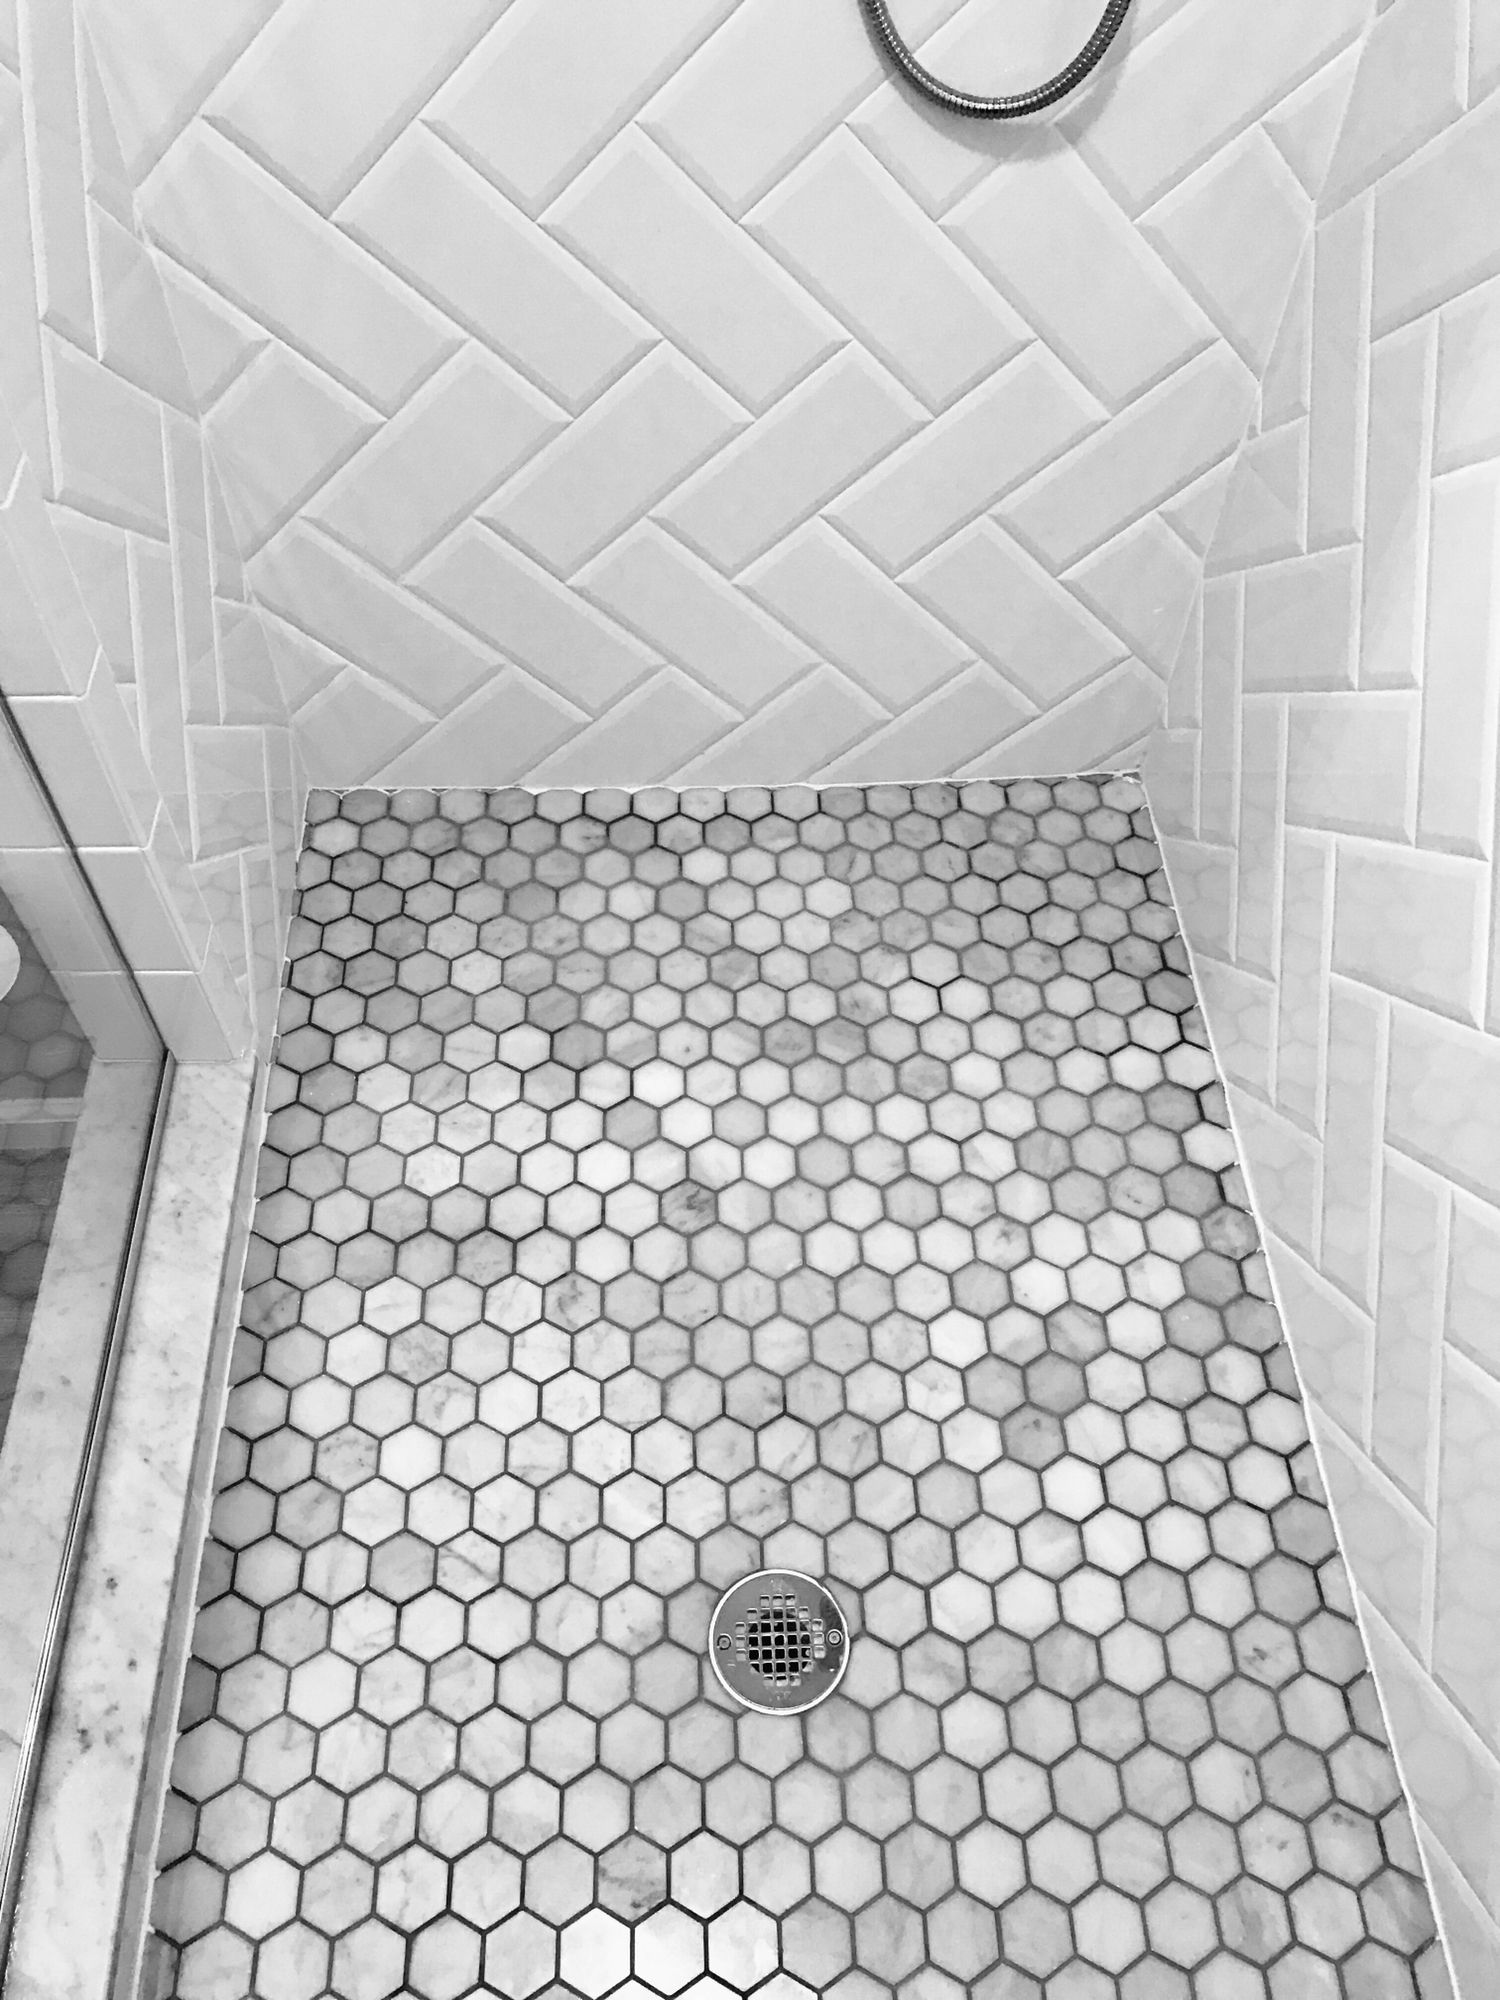 Bathroom Floor Tile. Herringbone Beveled White Subway Tile. Marble Hexagon  Mosaic Sheet Floor Tile Part 71